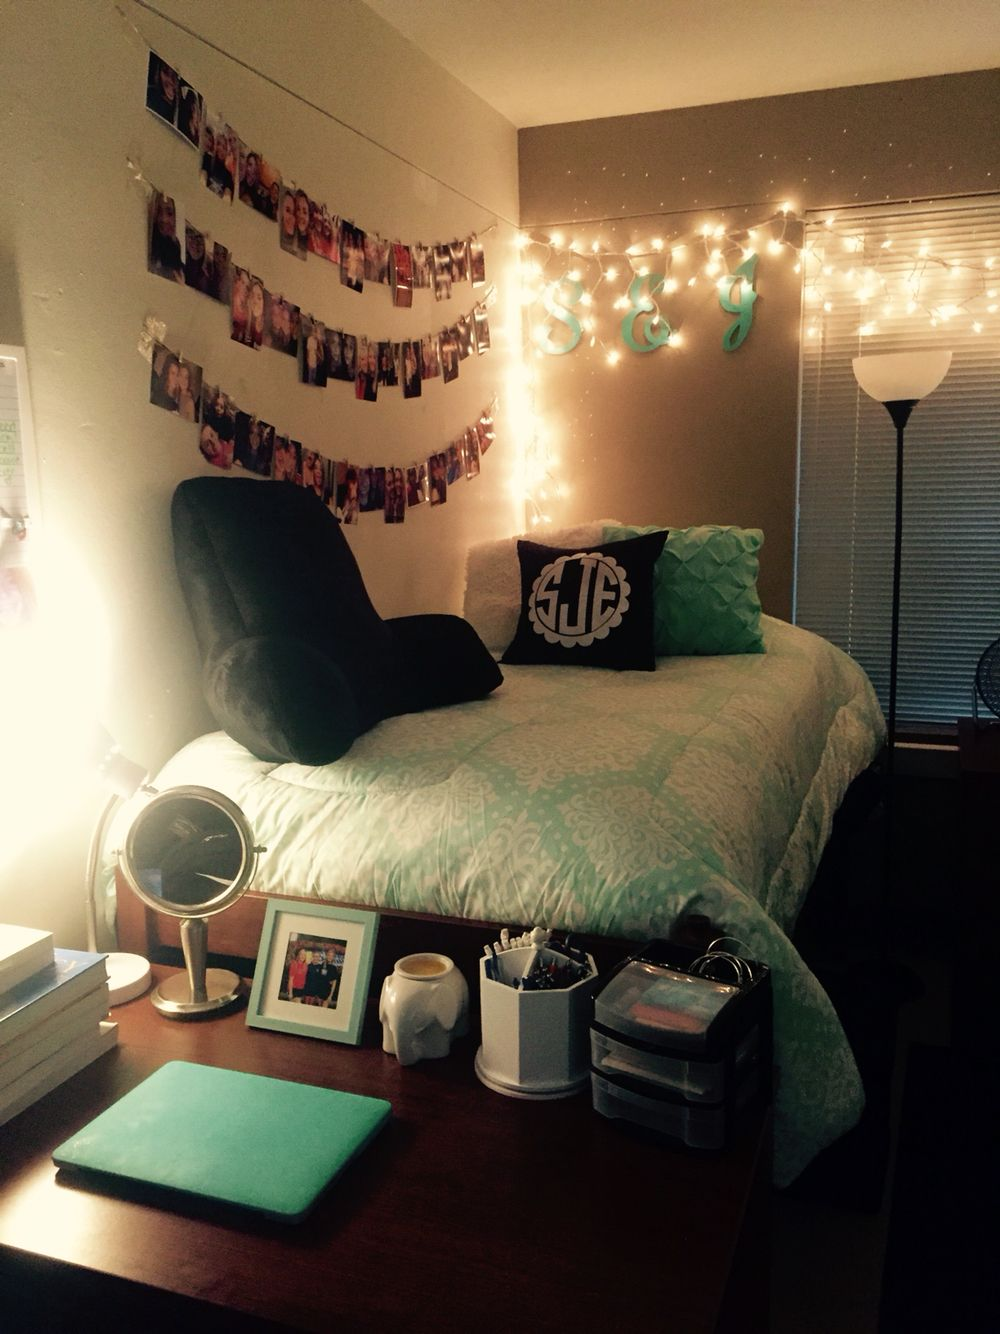 College dorm room 2015 college bound pinterest for Dorm bathroom ideas